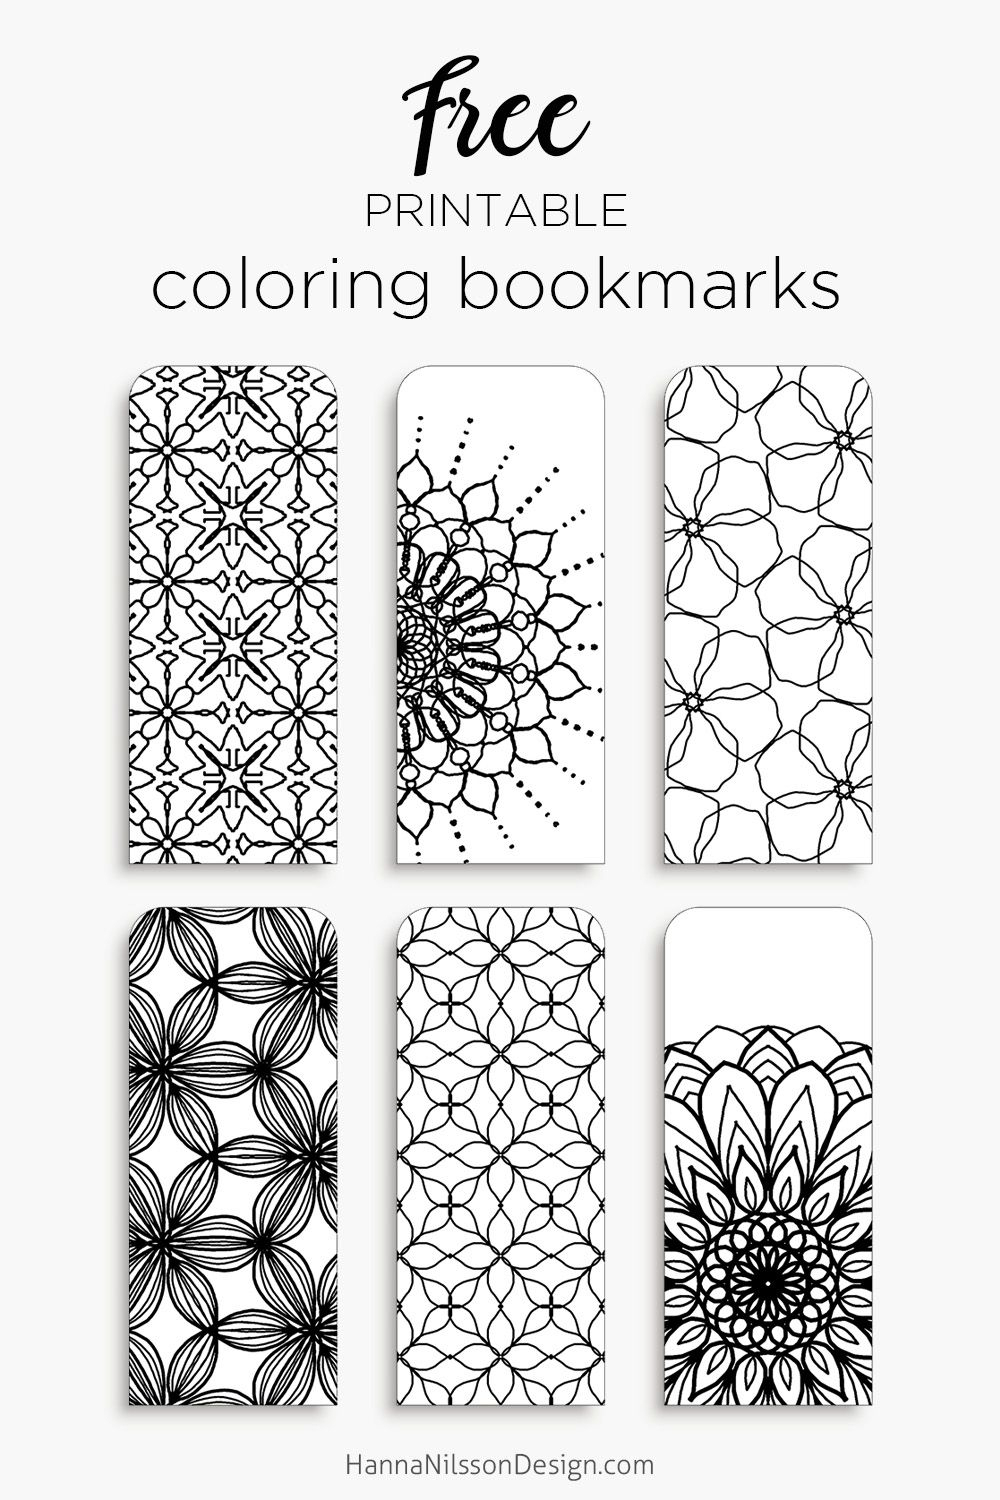 Coloring Bookmarks – Print, Color And Read   Hanna Nilsson Design - Free Printable Bookmarks